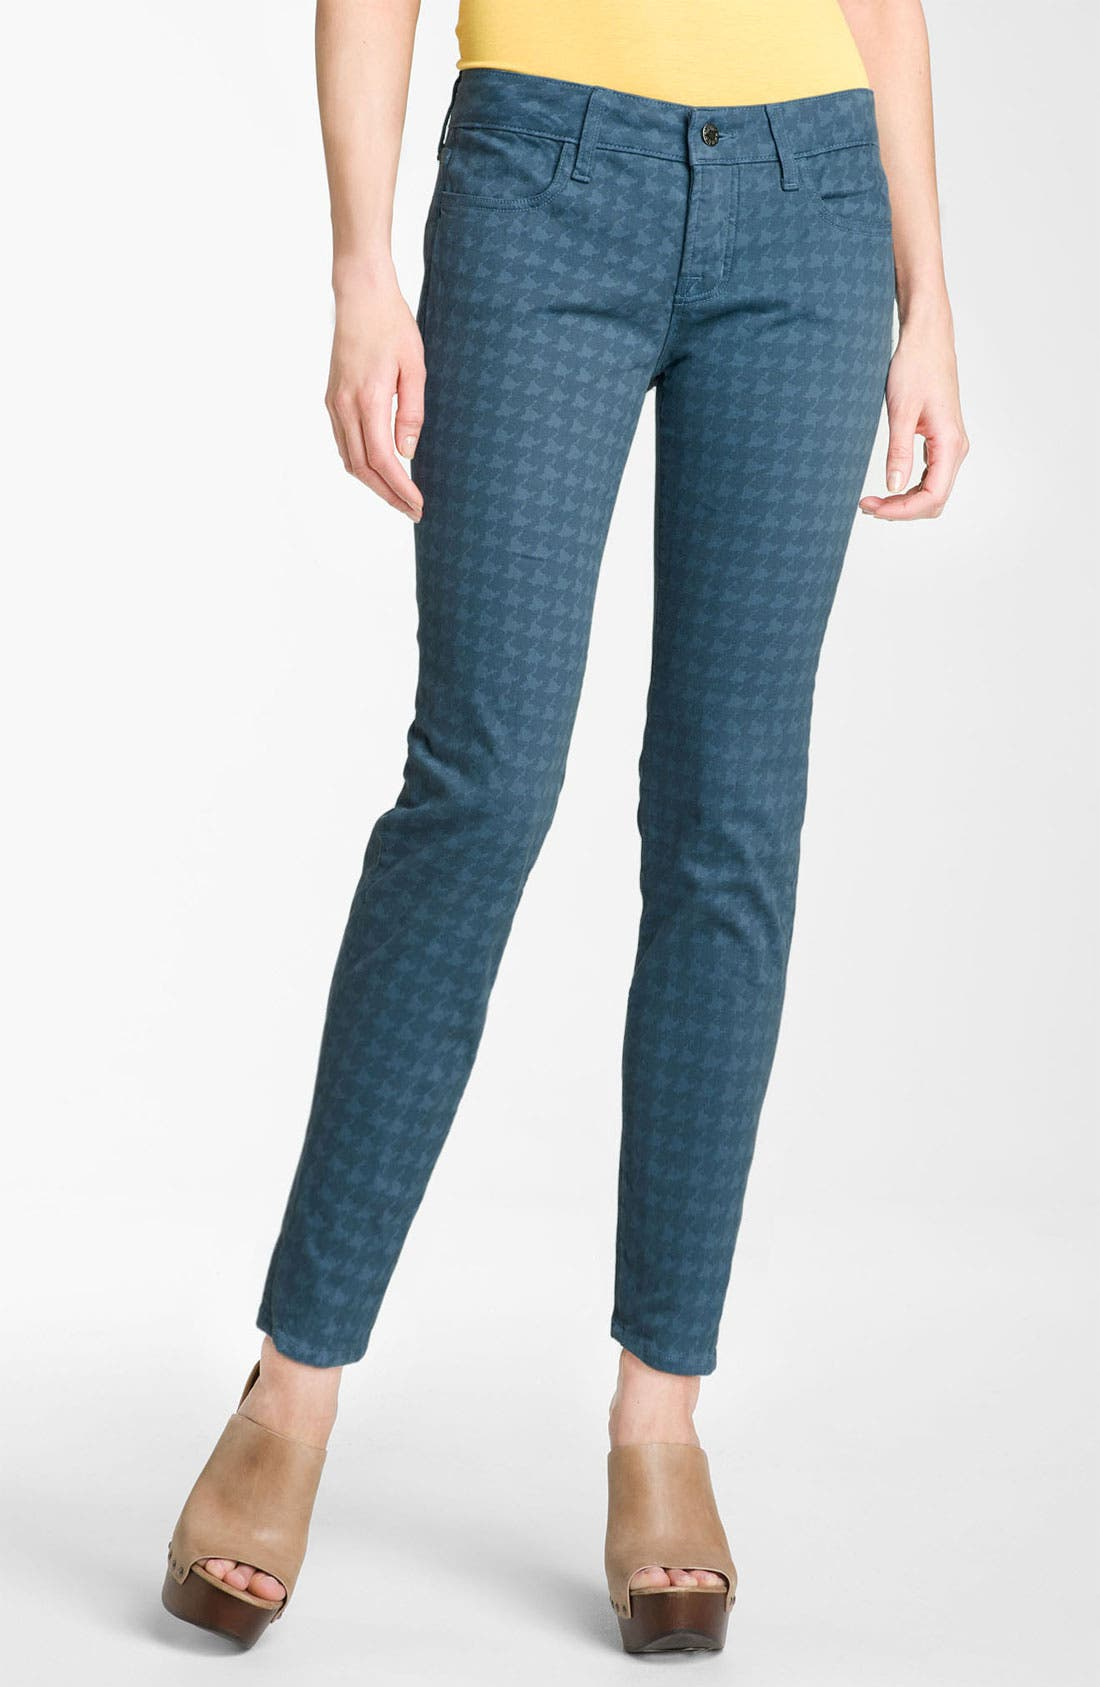 Main Image - Blue Essence Houndstooth Twill Ankle Jeans (Petite)